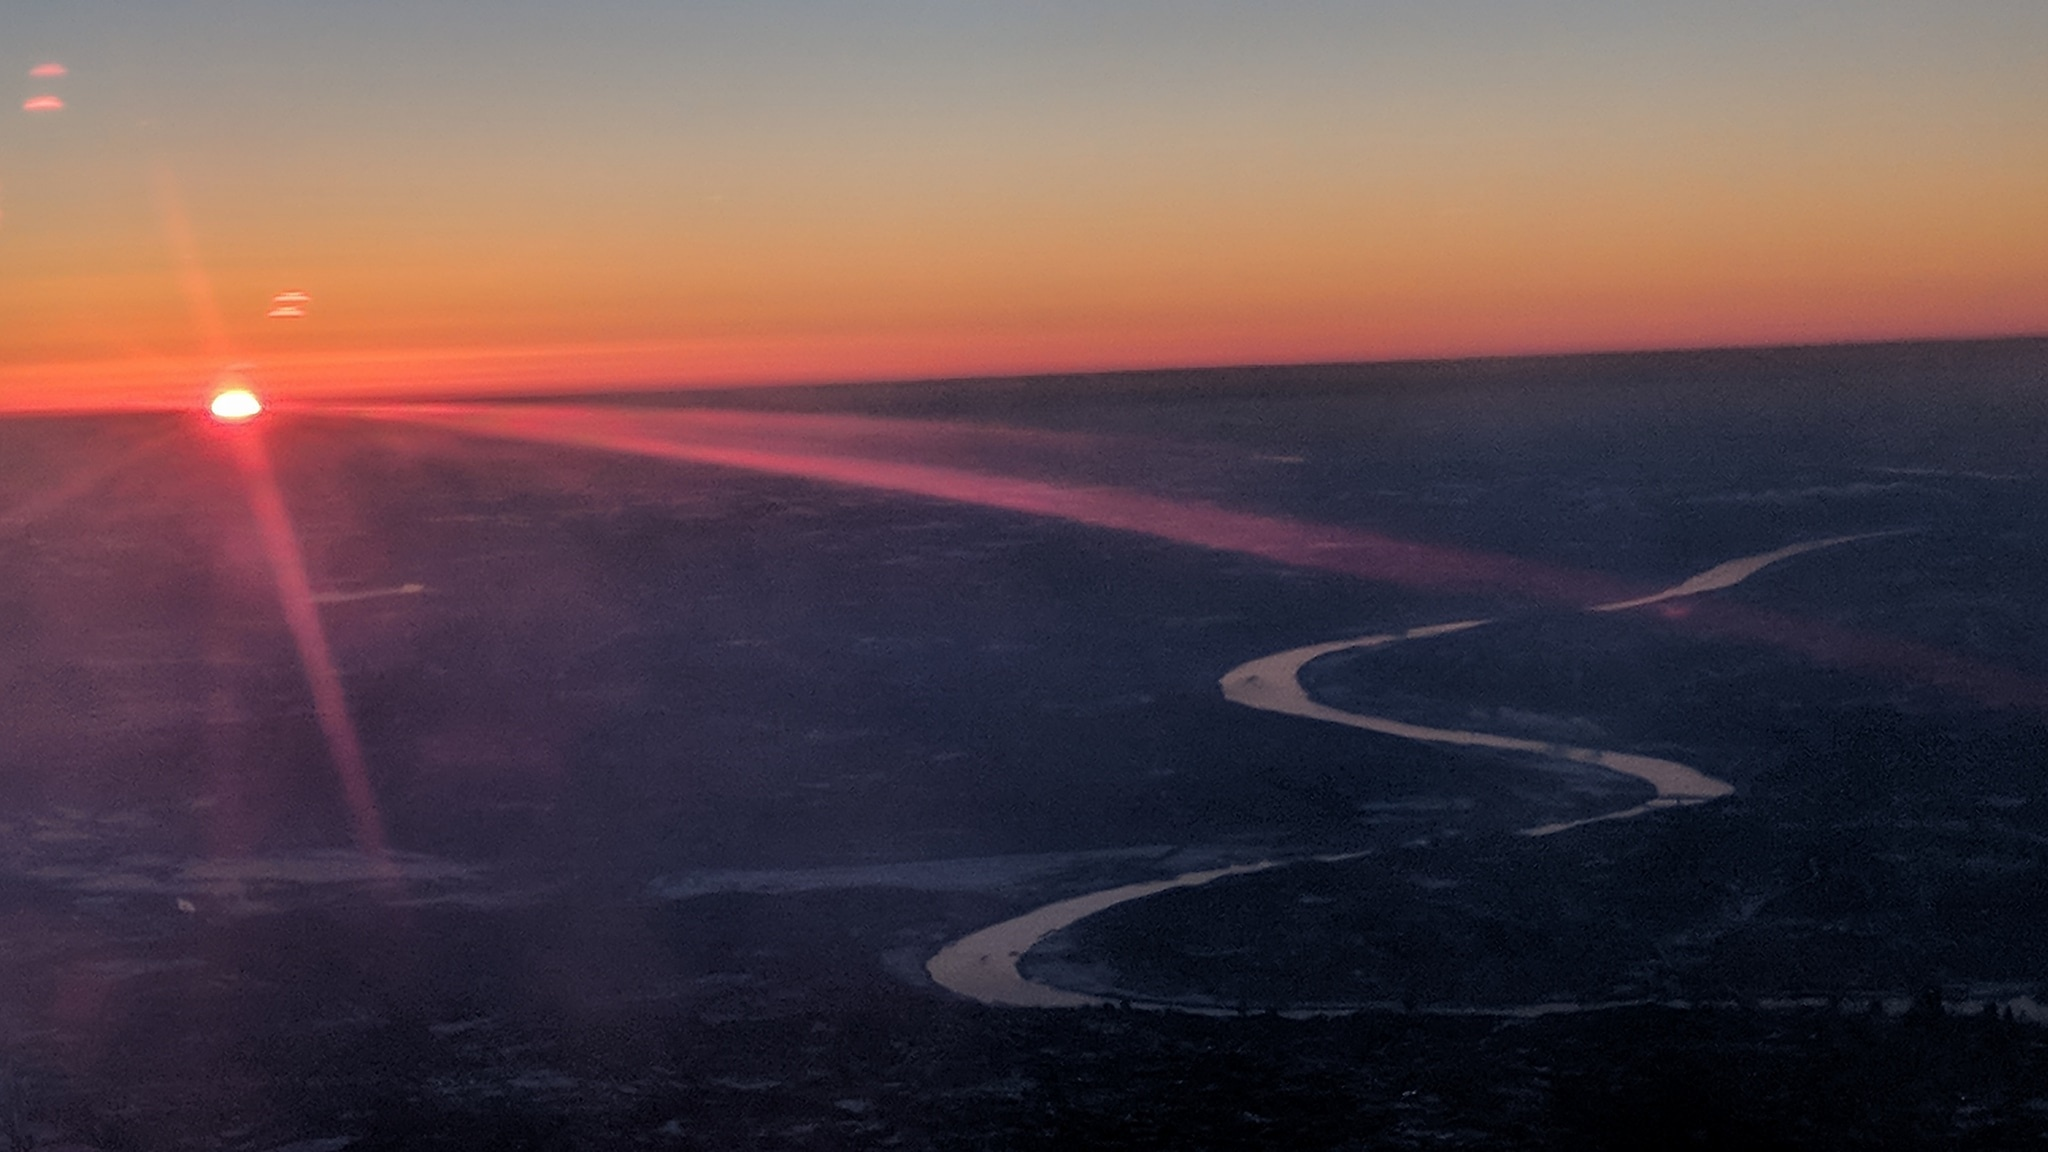 Sunset over Cincinnati as Mr. Kubik takes off from the airport.